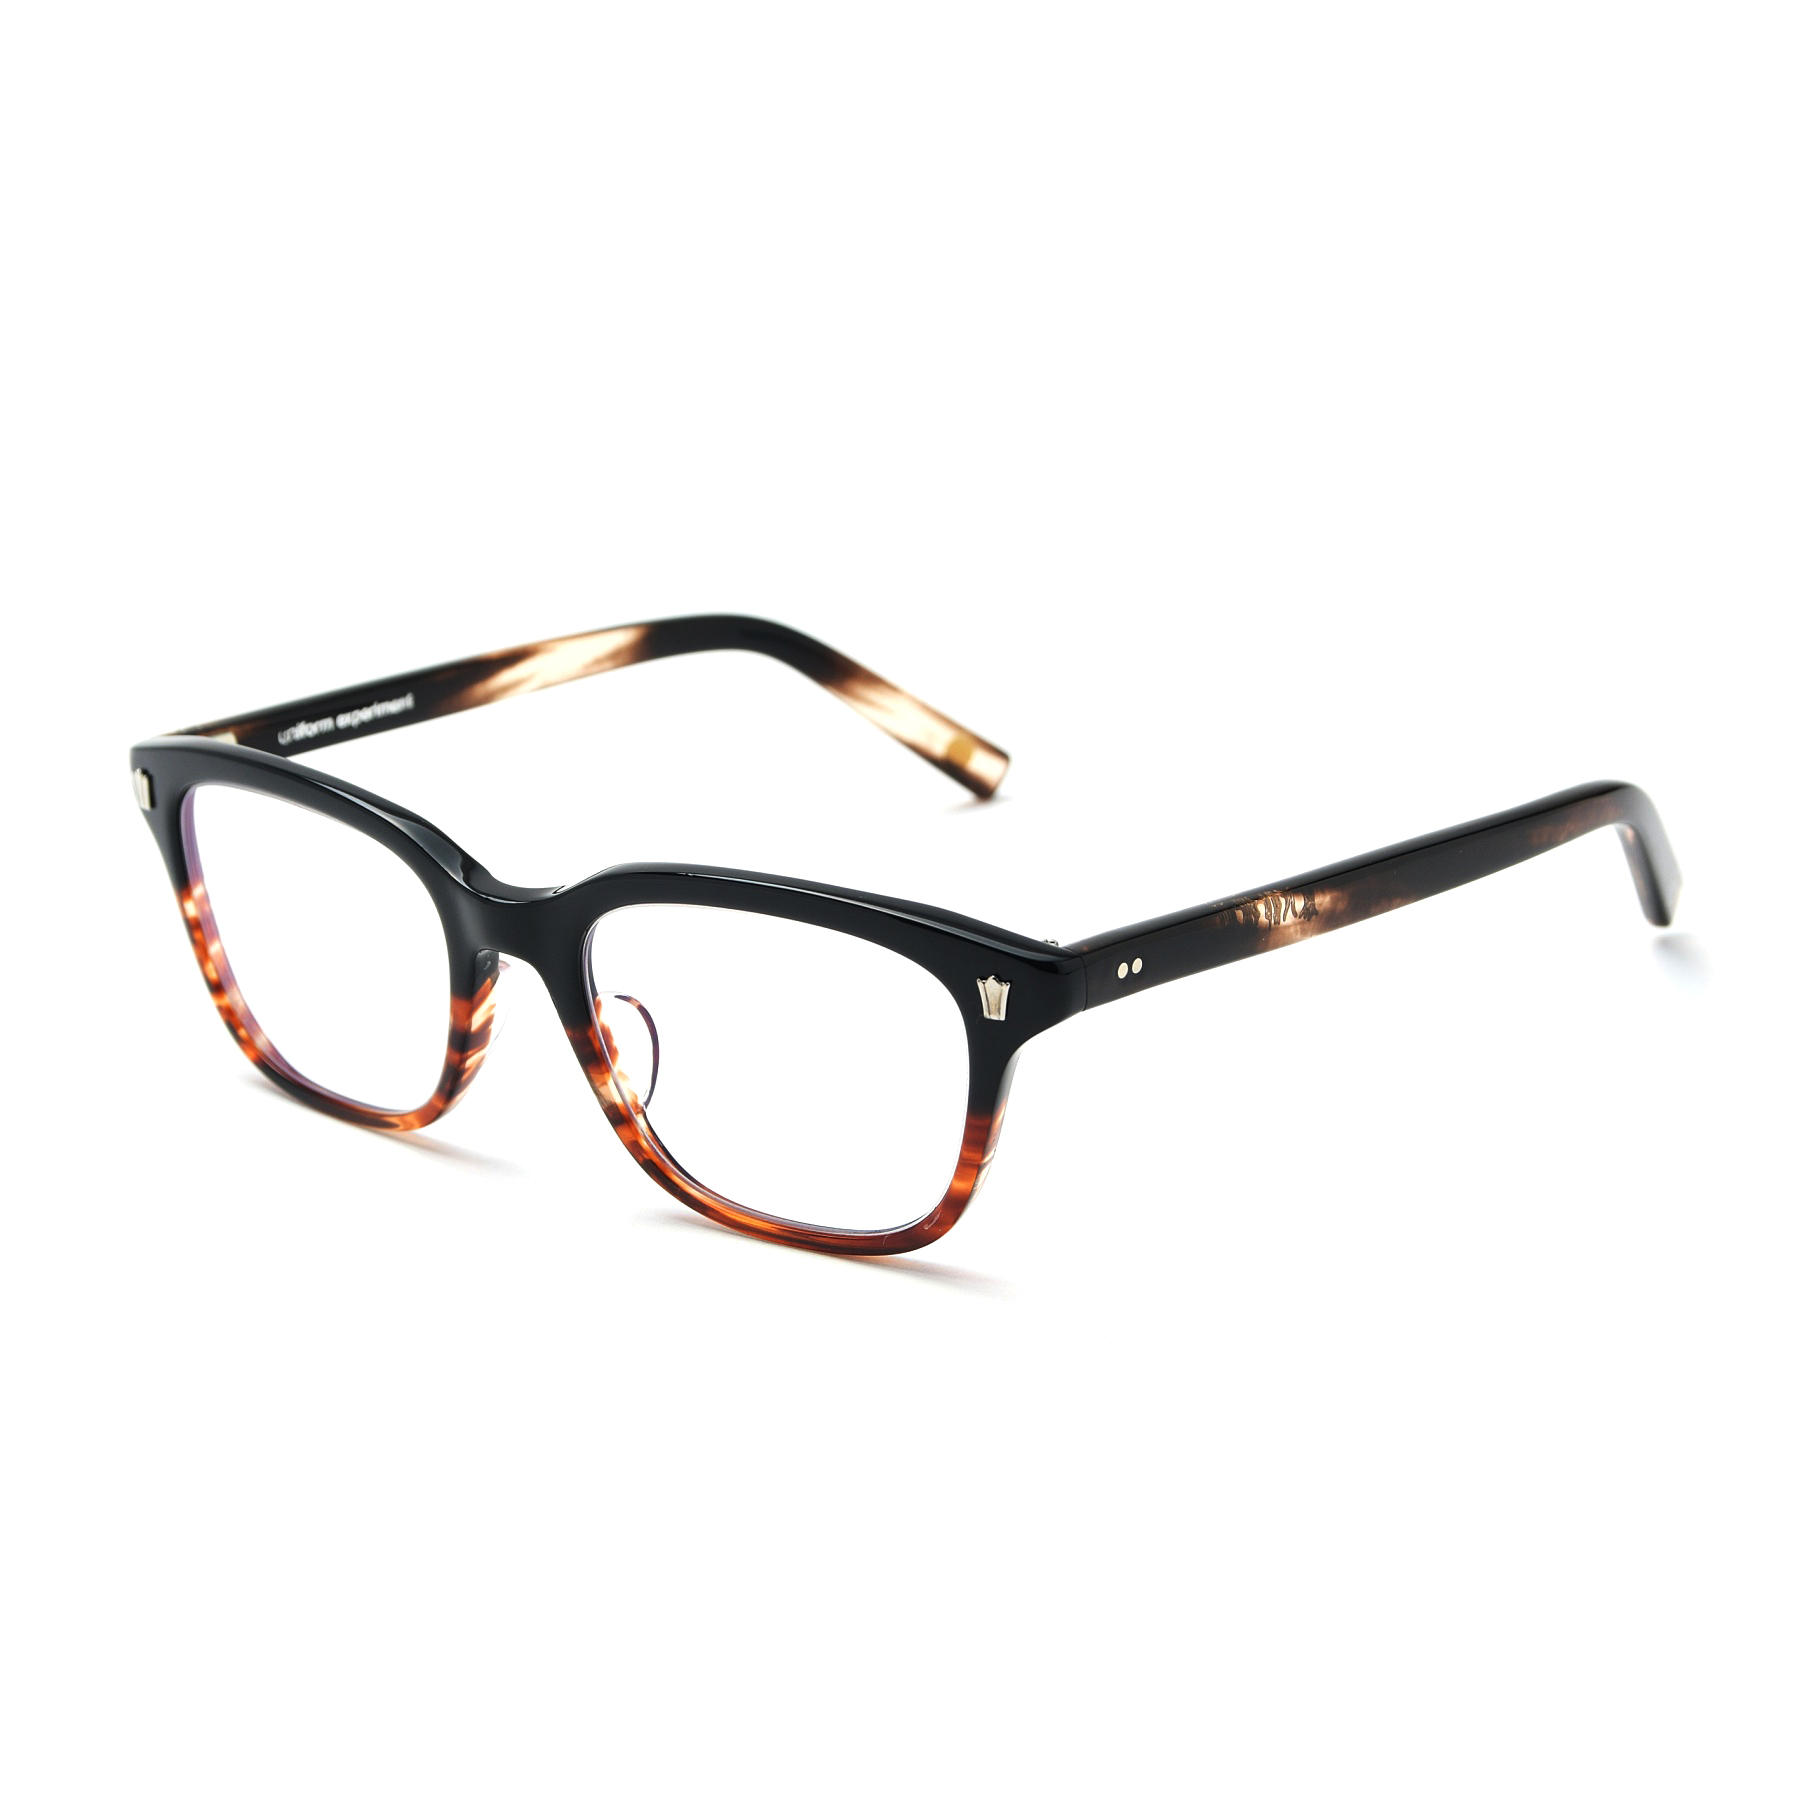 uniform experiment / 泰八郎謹製 GLASSES (Brown)